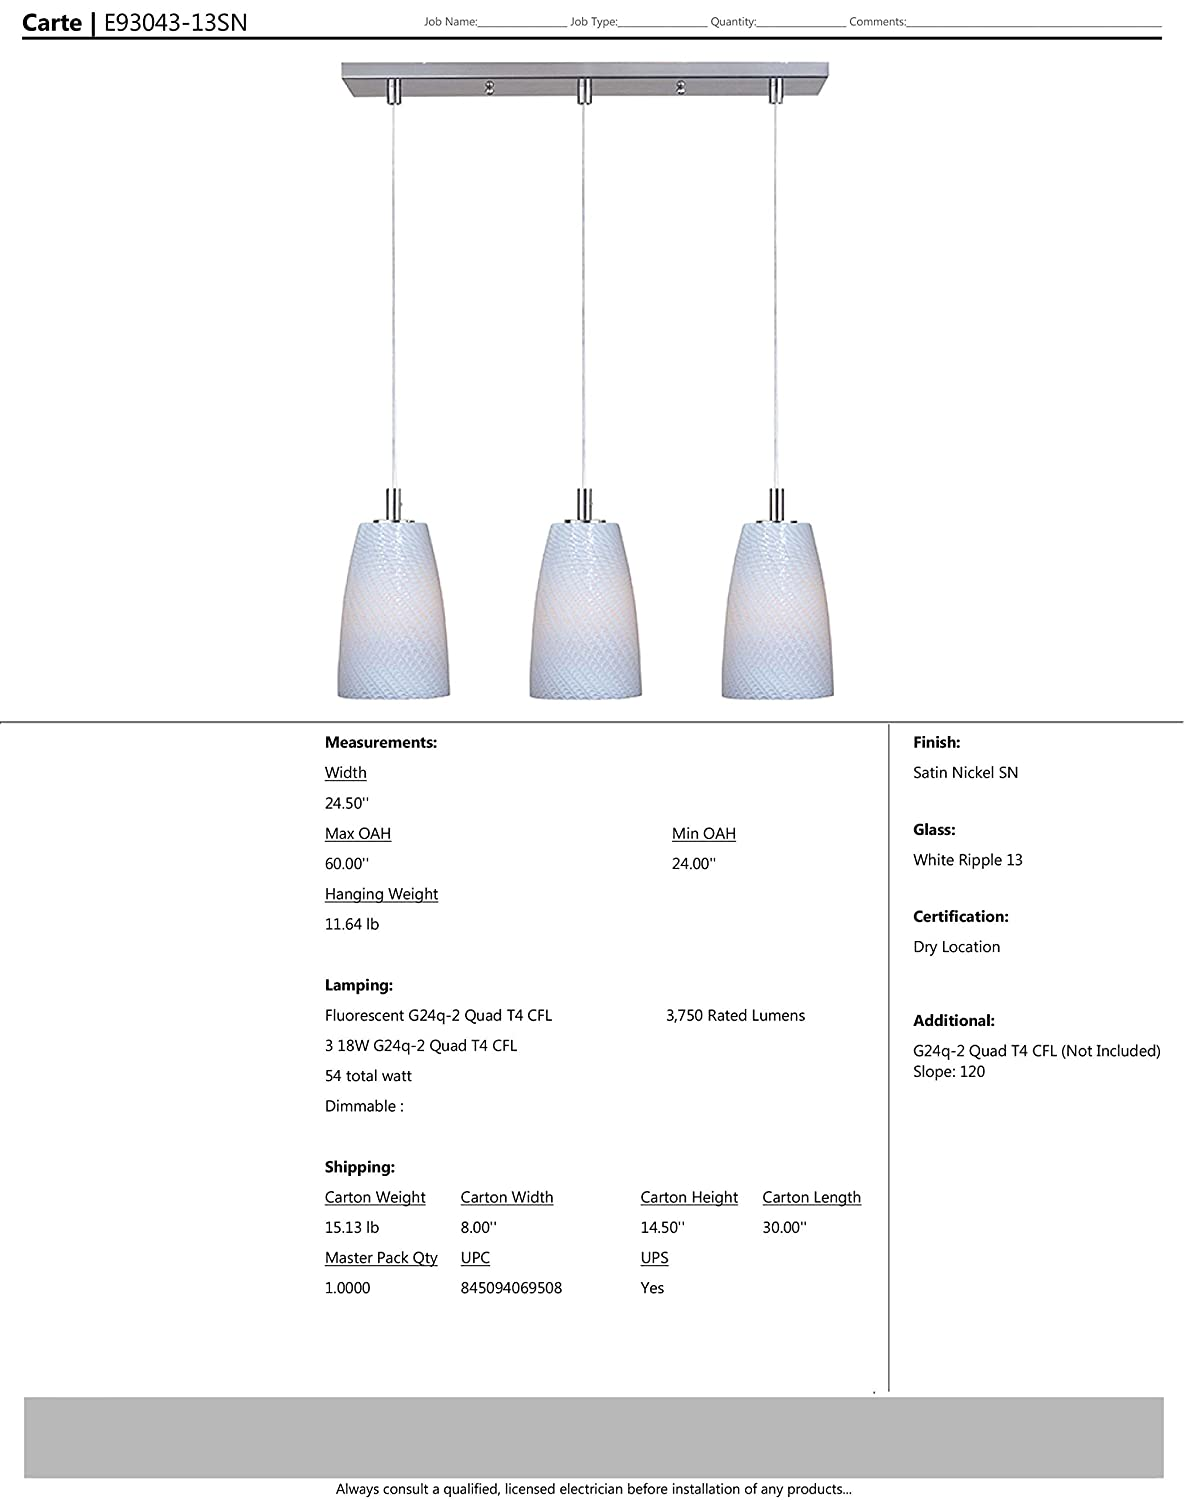 Dry Safety Rated 3000 Rated Lumens 40W Max. Low-Voltage Electronic Dimmer G24q-2 Quad T4 CFL Fluorescent Bulb White Ripple Glass Satin Nickel Finish 2900K Color Temp. Glass Shade Material ET2 E93043-13SN Carte 3-Light Linear Pendant